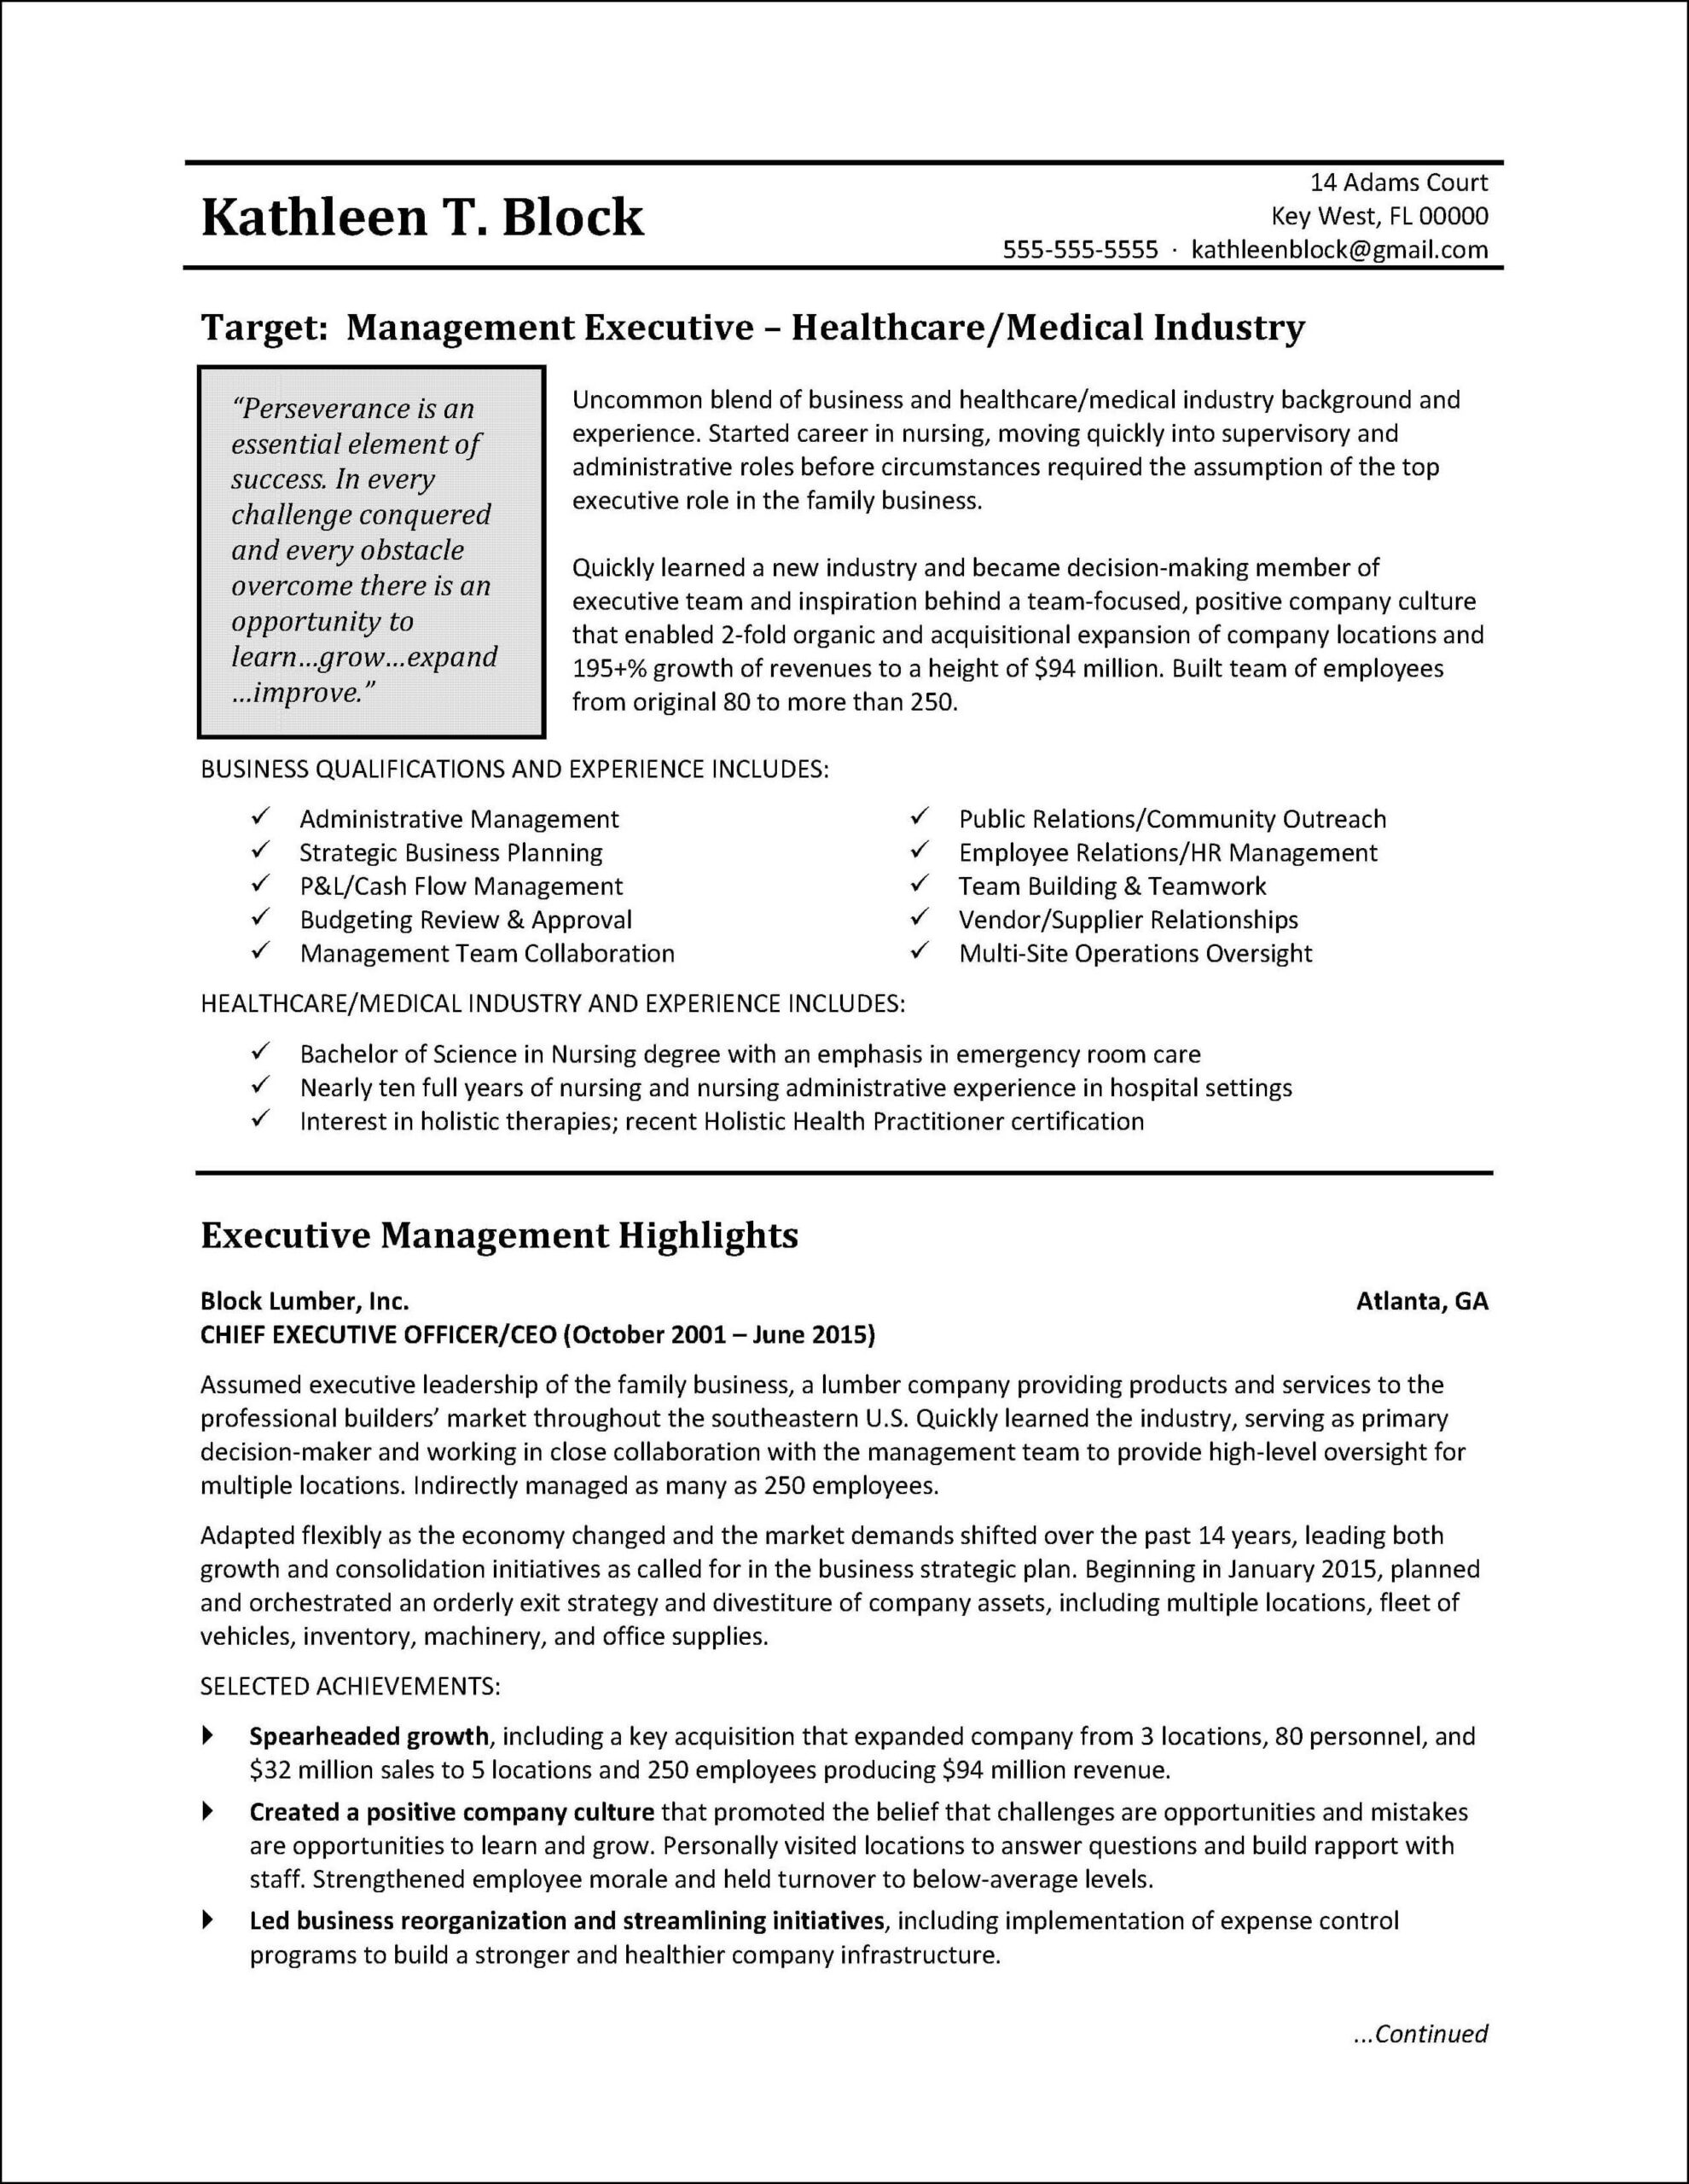 resume tips for former business owners to land corporate job owner ccna test proctor help Resume Resume For Corporate Job